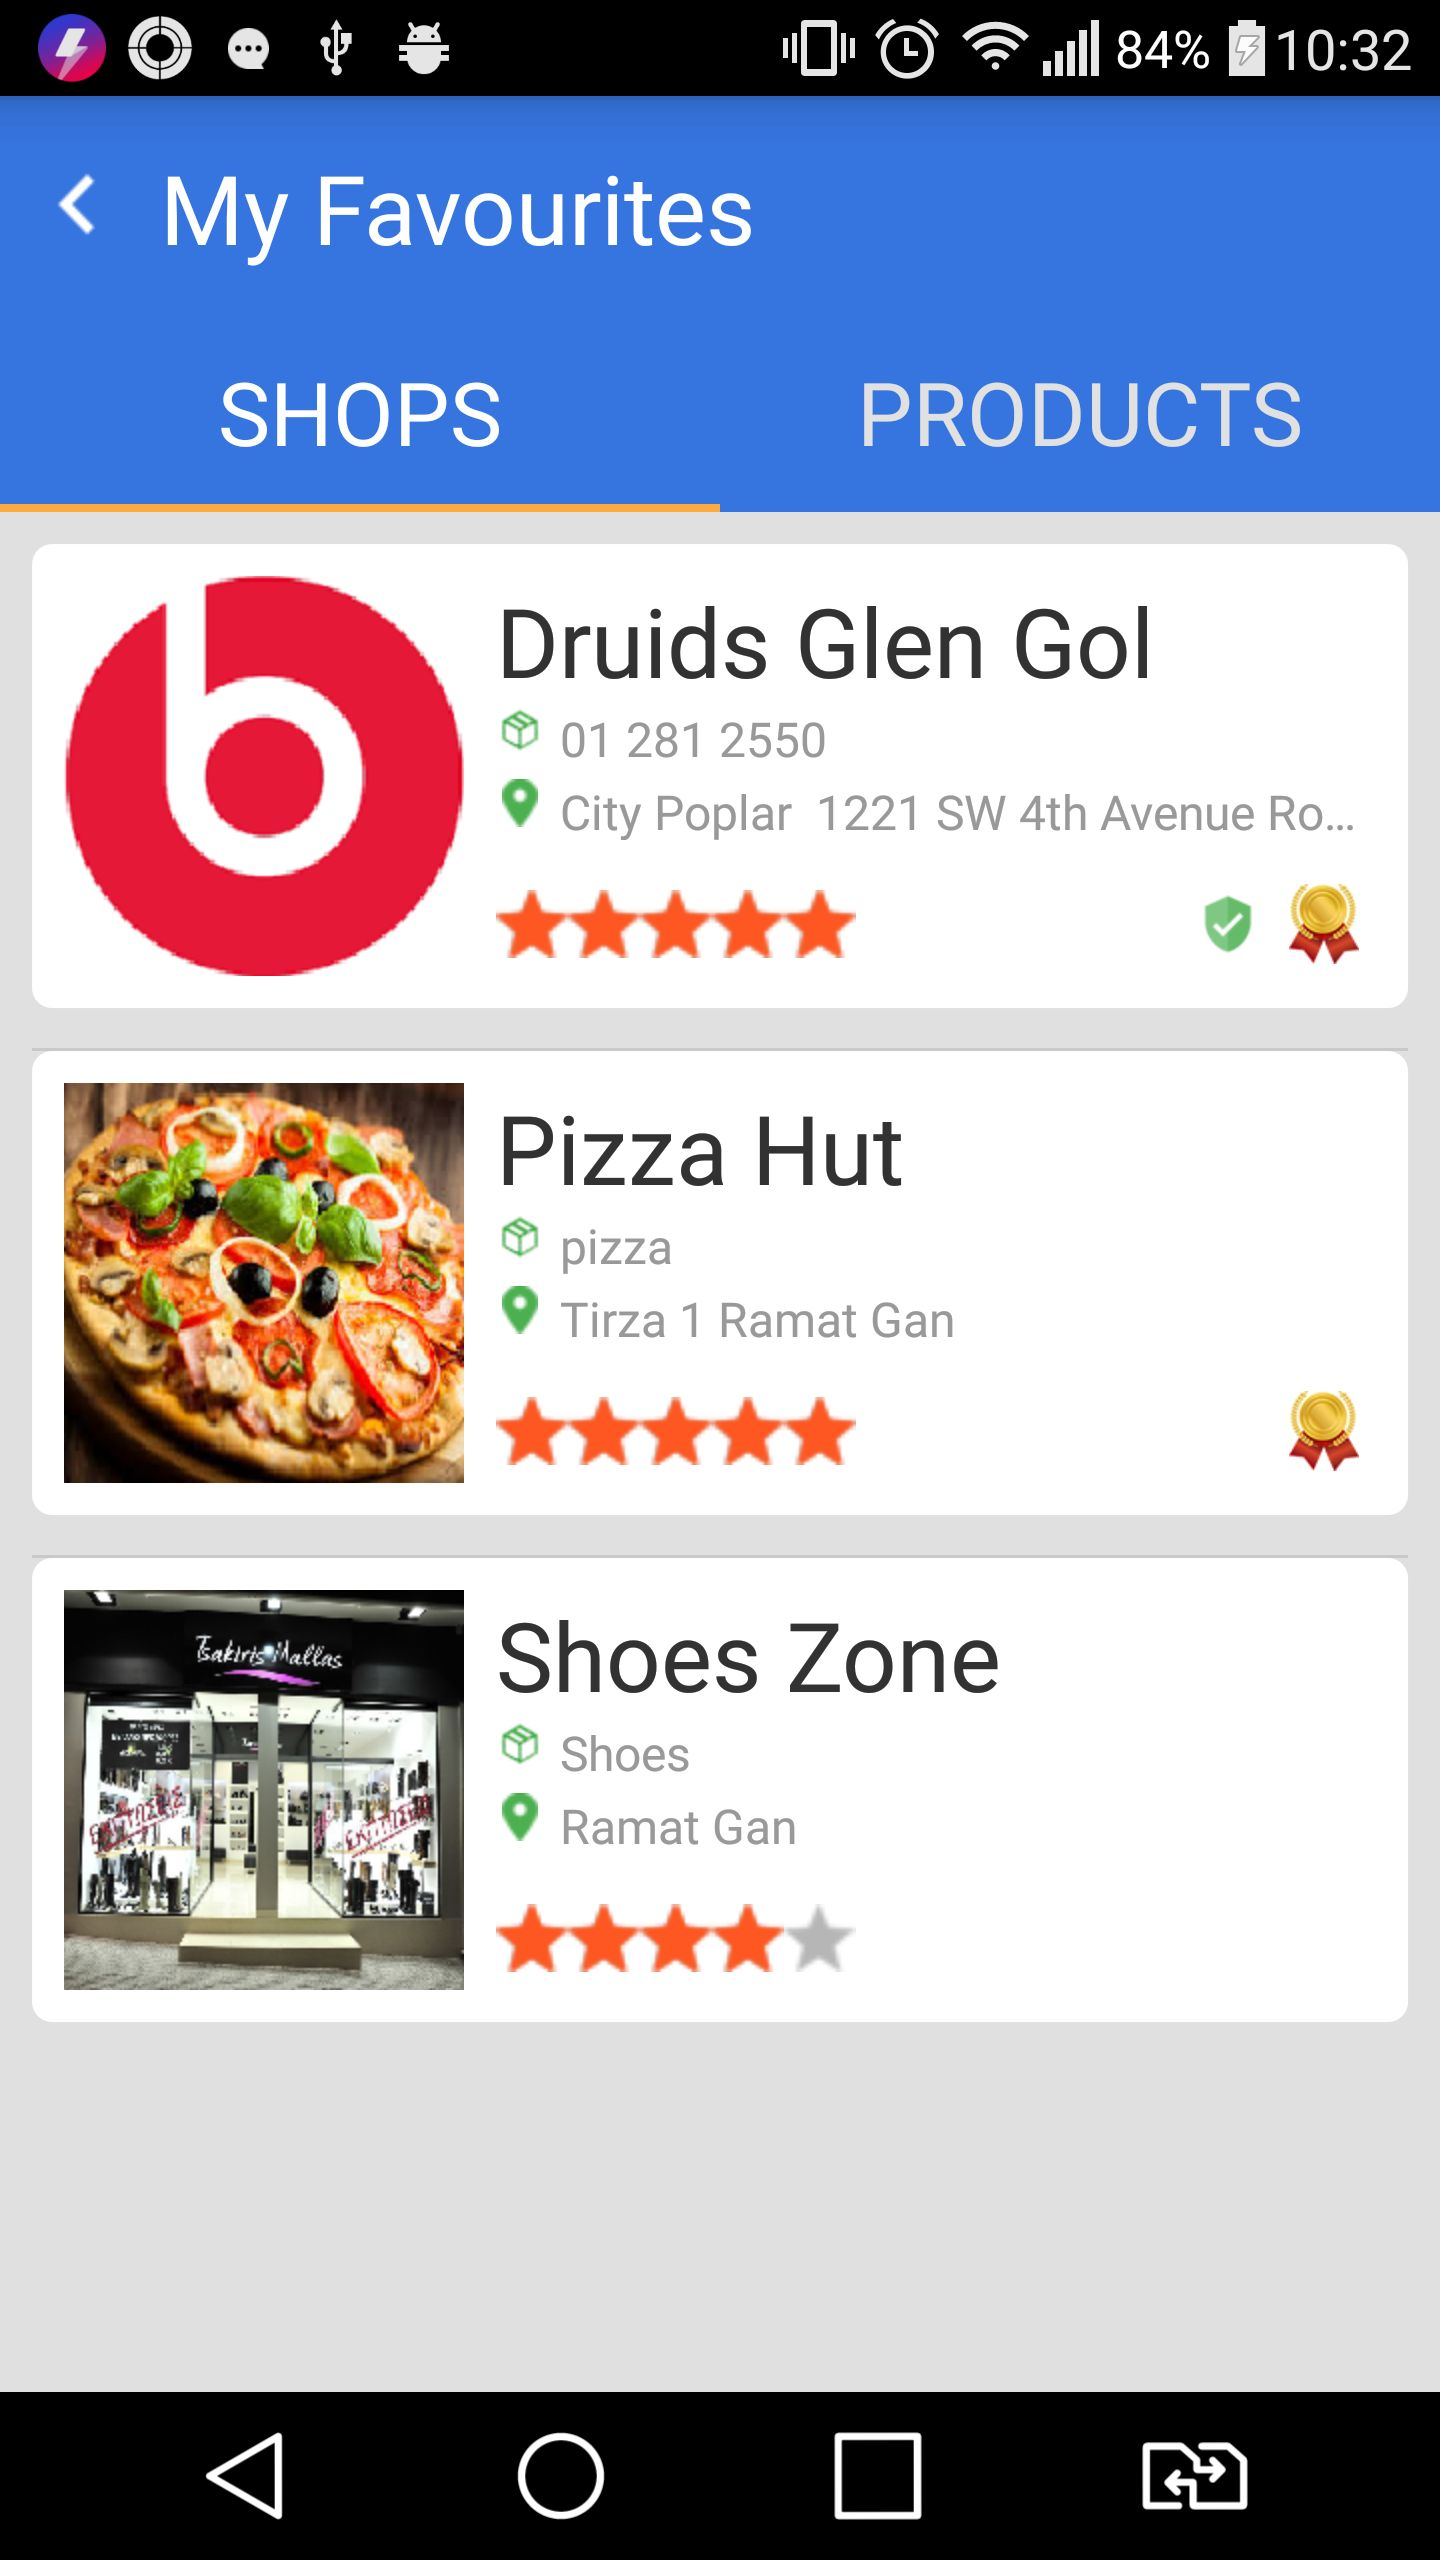 Marketplace - Android App Template Screenshot 7